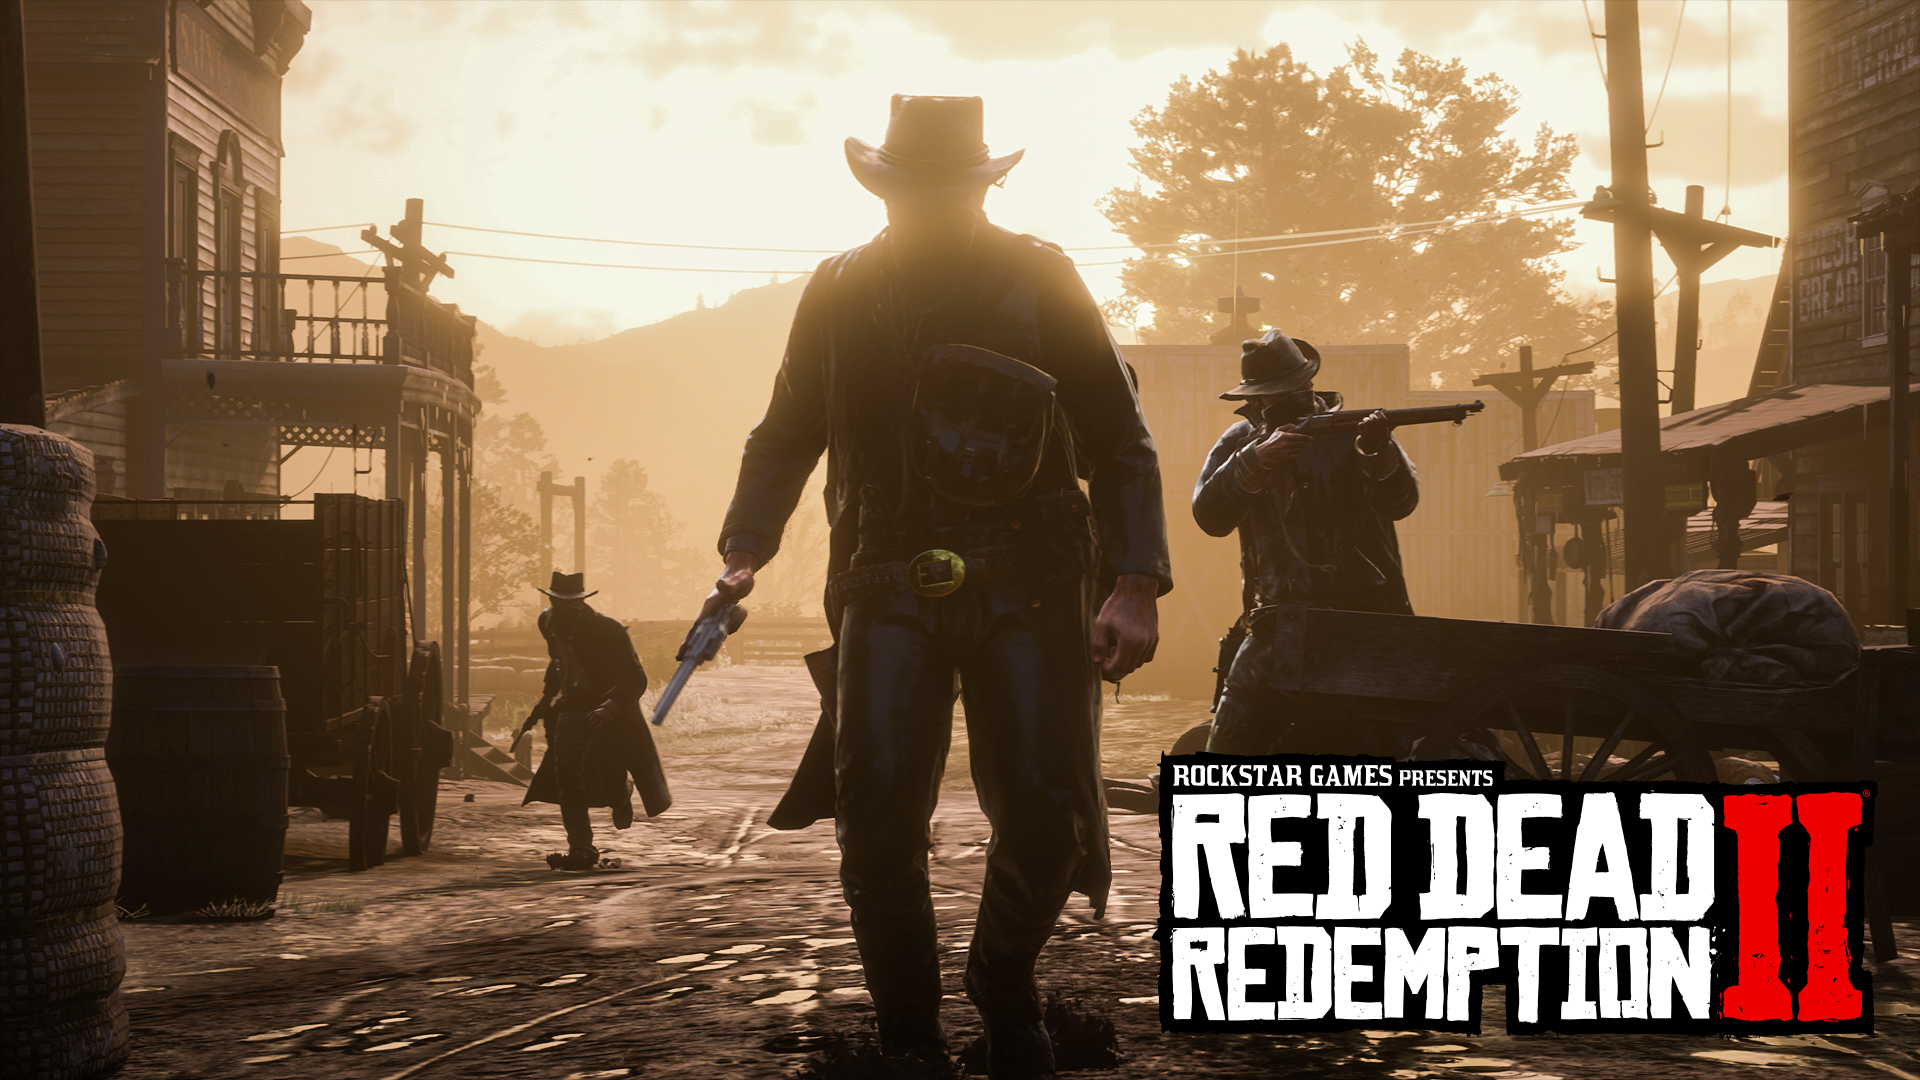 Play  C B Red Dead Redemption  Three Masked Outlaws Walk Through A Western Town With Guns Drawn